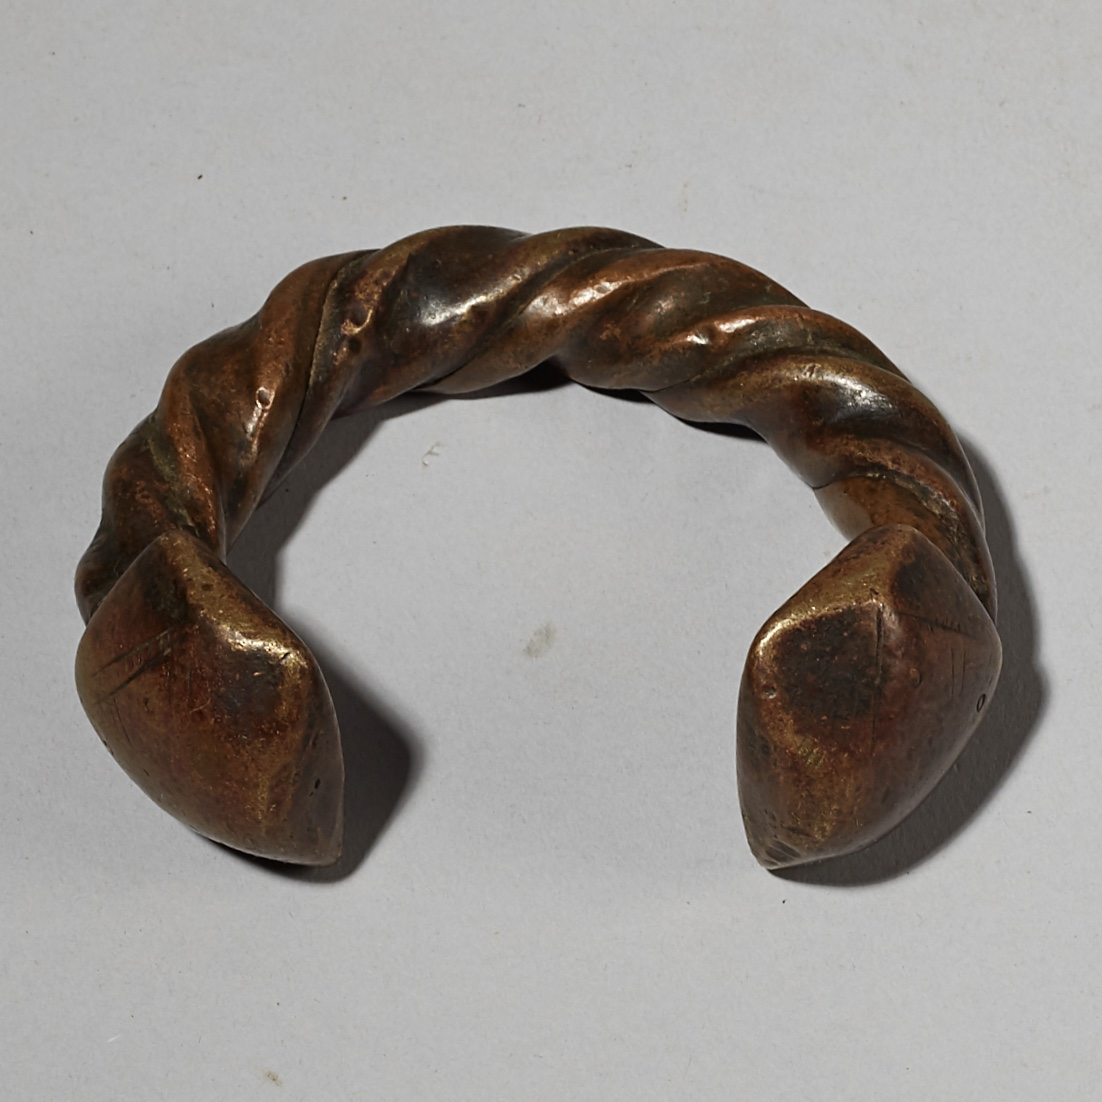 A LARGE HEAVY FULANI CURRENCY ANKLET FROM MALI W AFRICA ( No 4098)